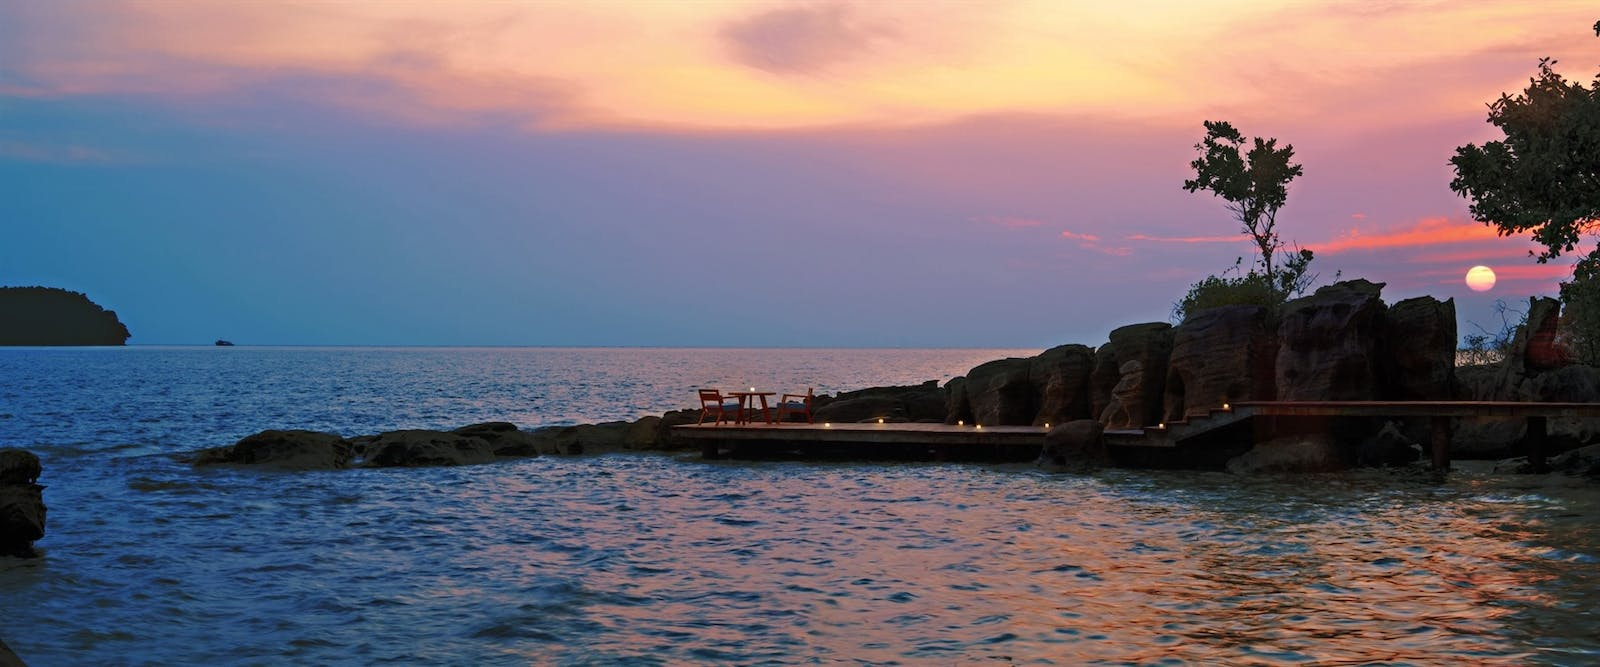 The Boardwalk at Sunset at Six Senses Krabey Island, Cambodia